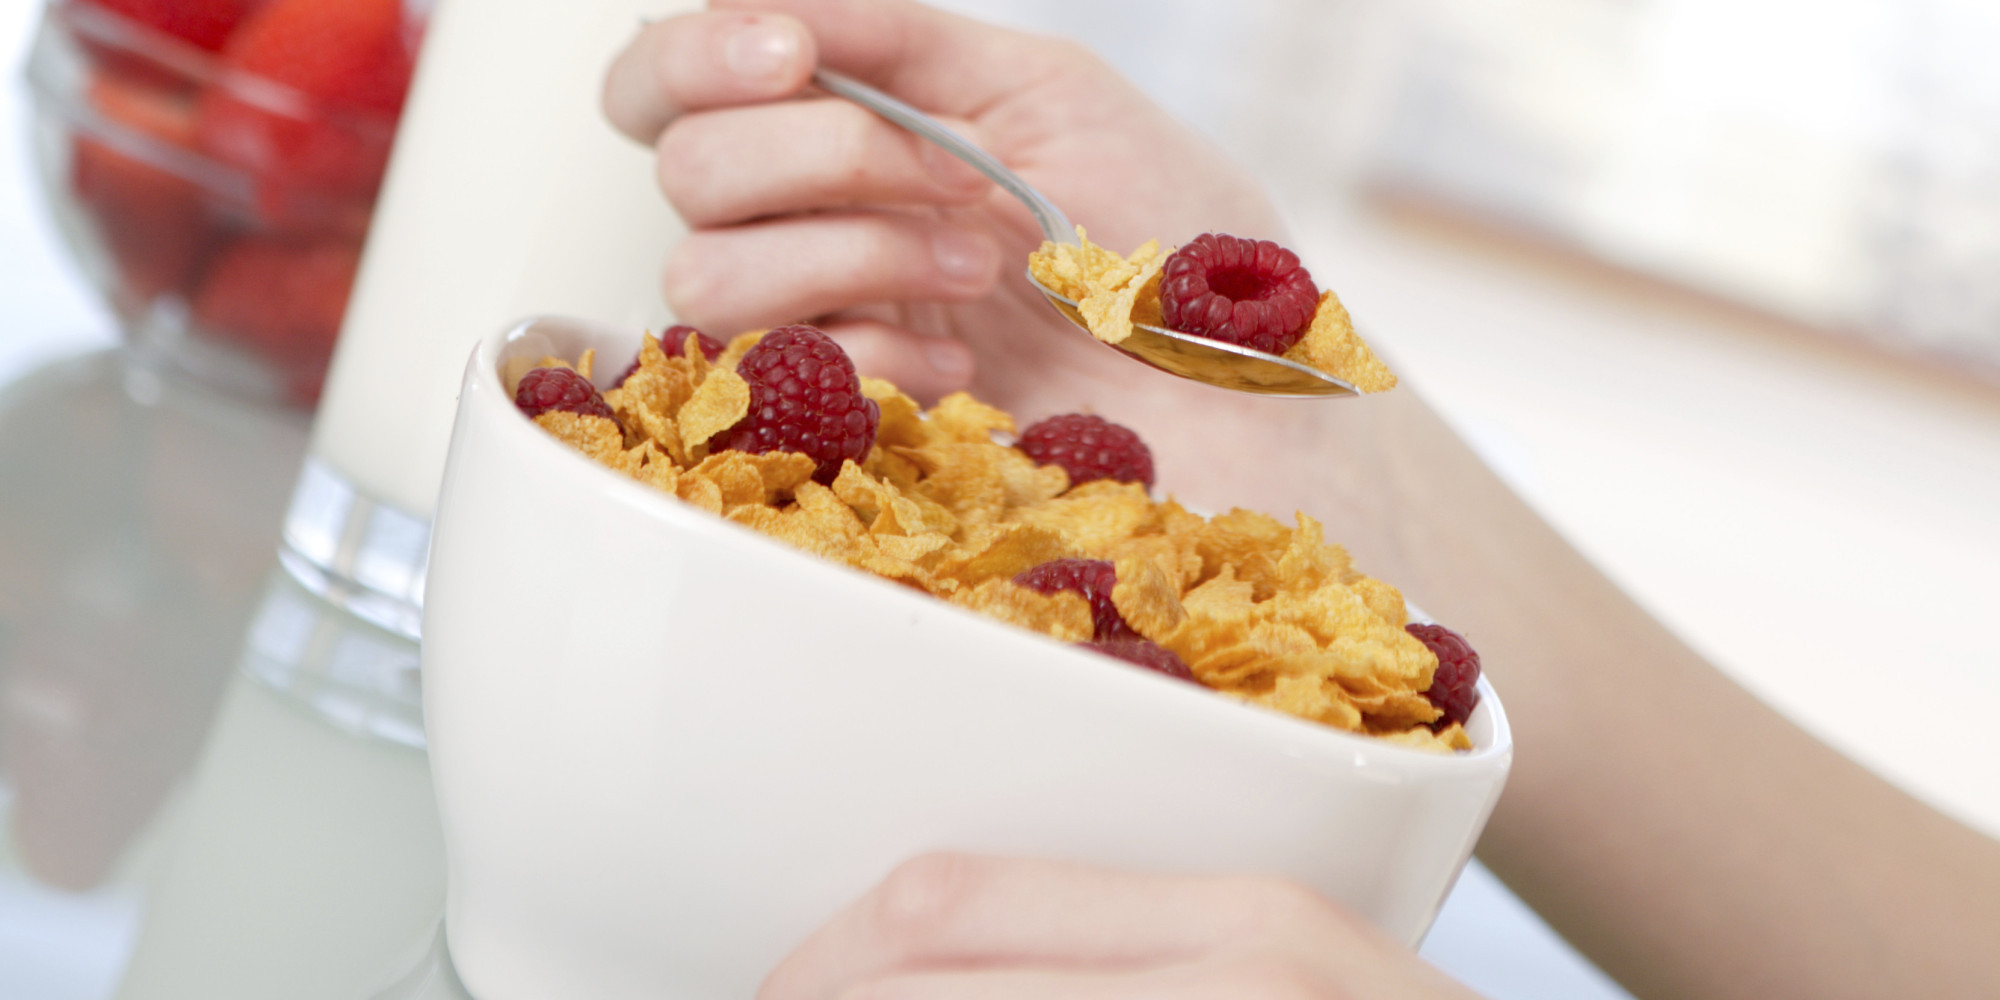 Healthy Breakfast For Teens  Teens Who Skip Breakfast May Face Metabolic Syndrome Risk